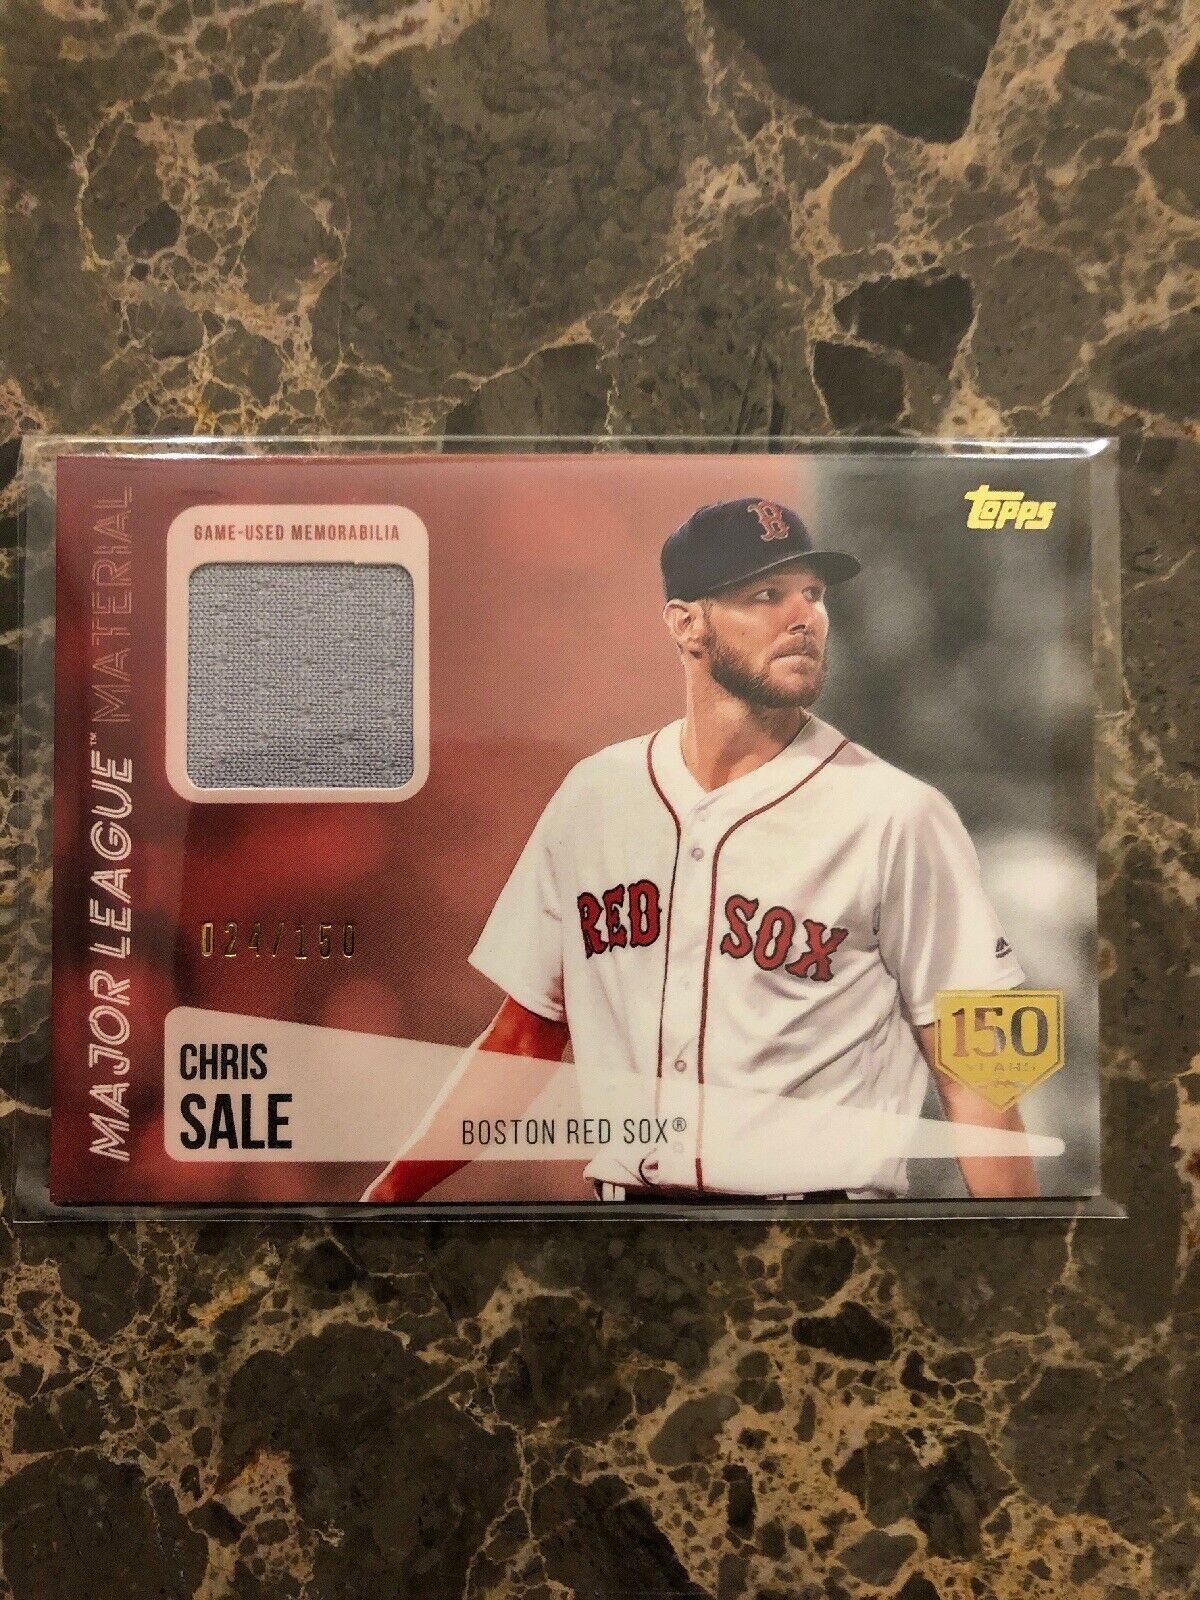 2019 Topps Mlb Relics 150th Anniversary Mlm Csa Chris Sale Limited Edition 150